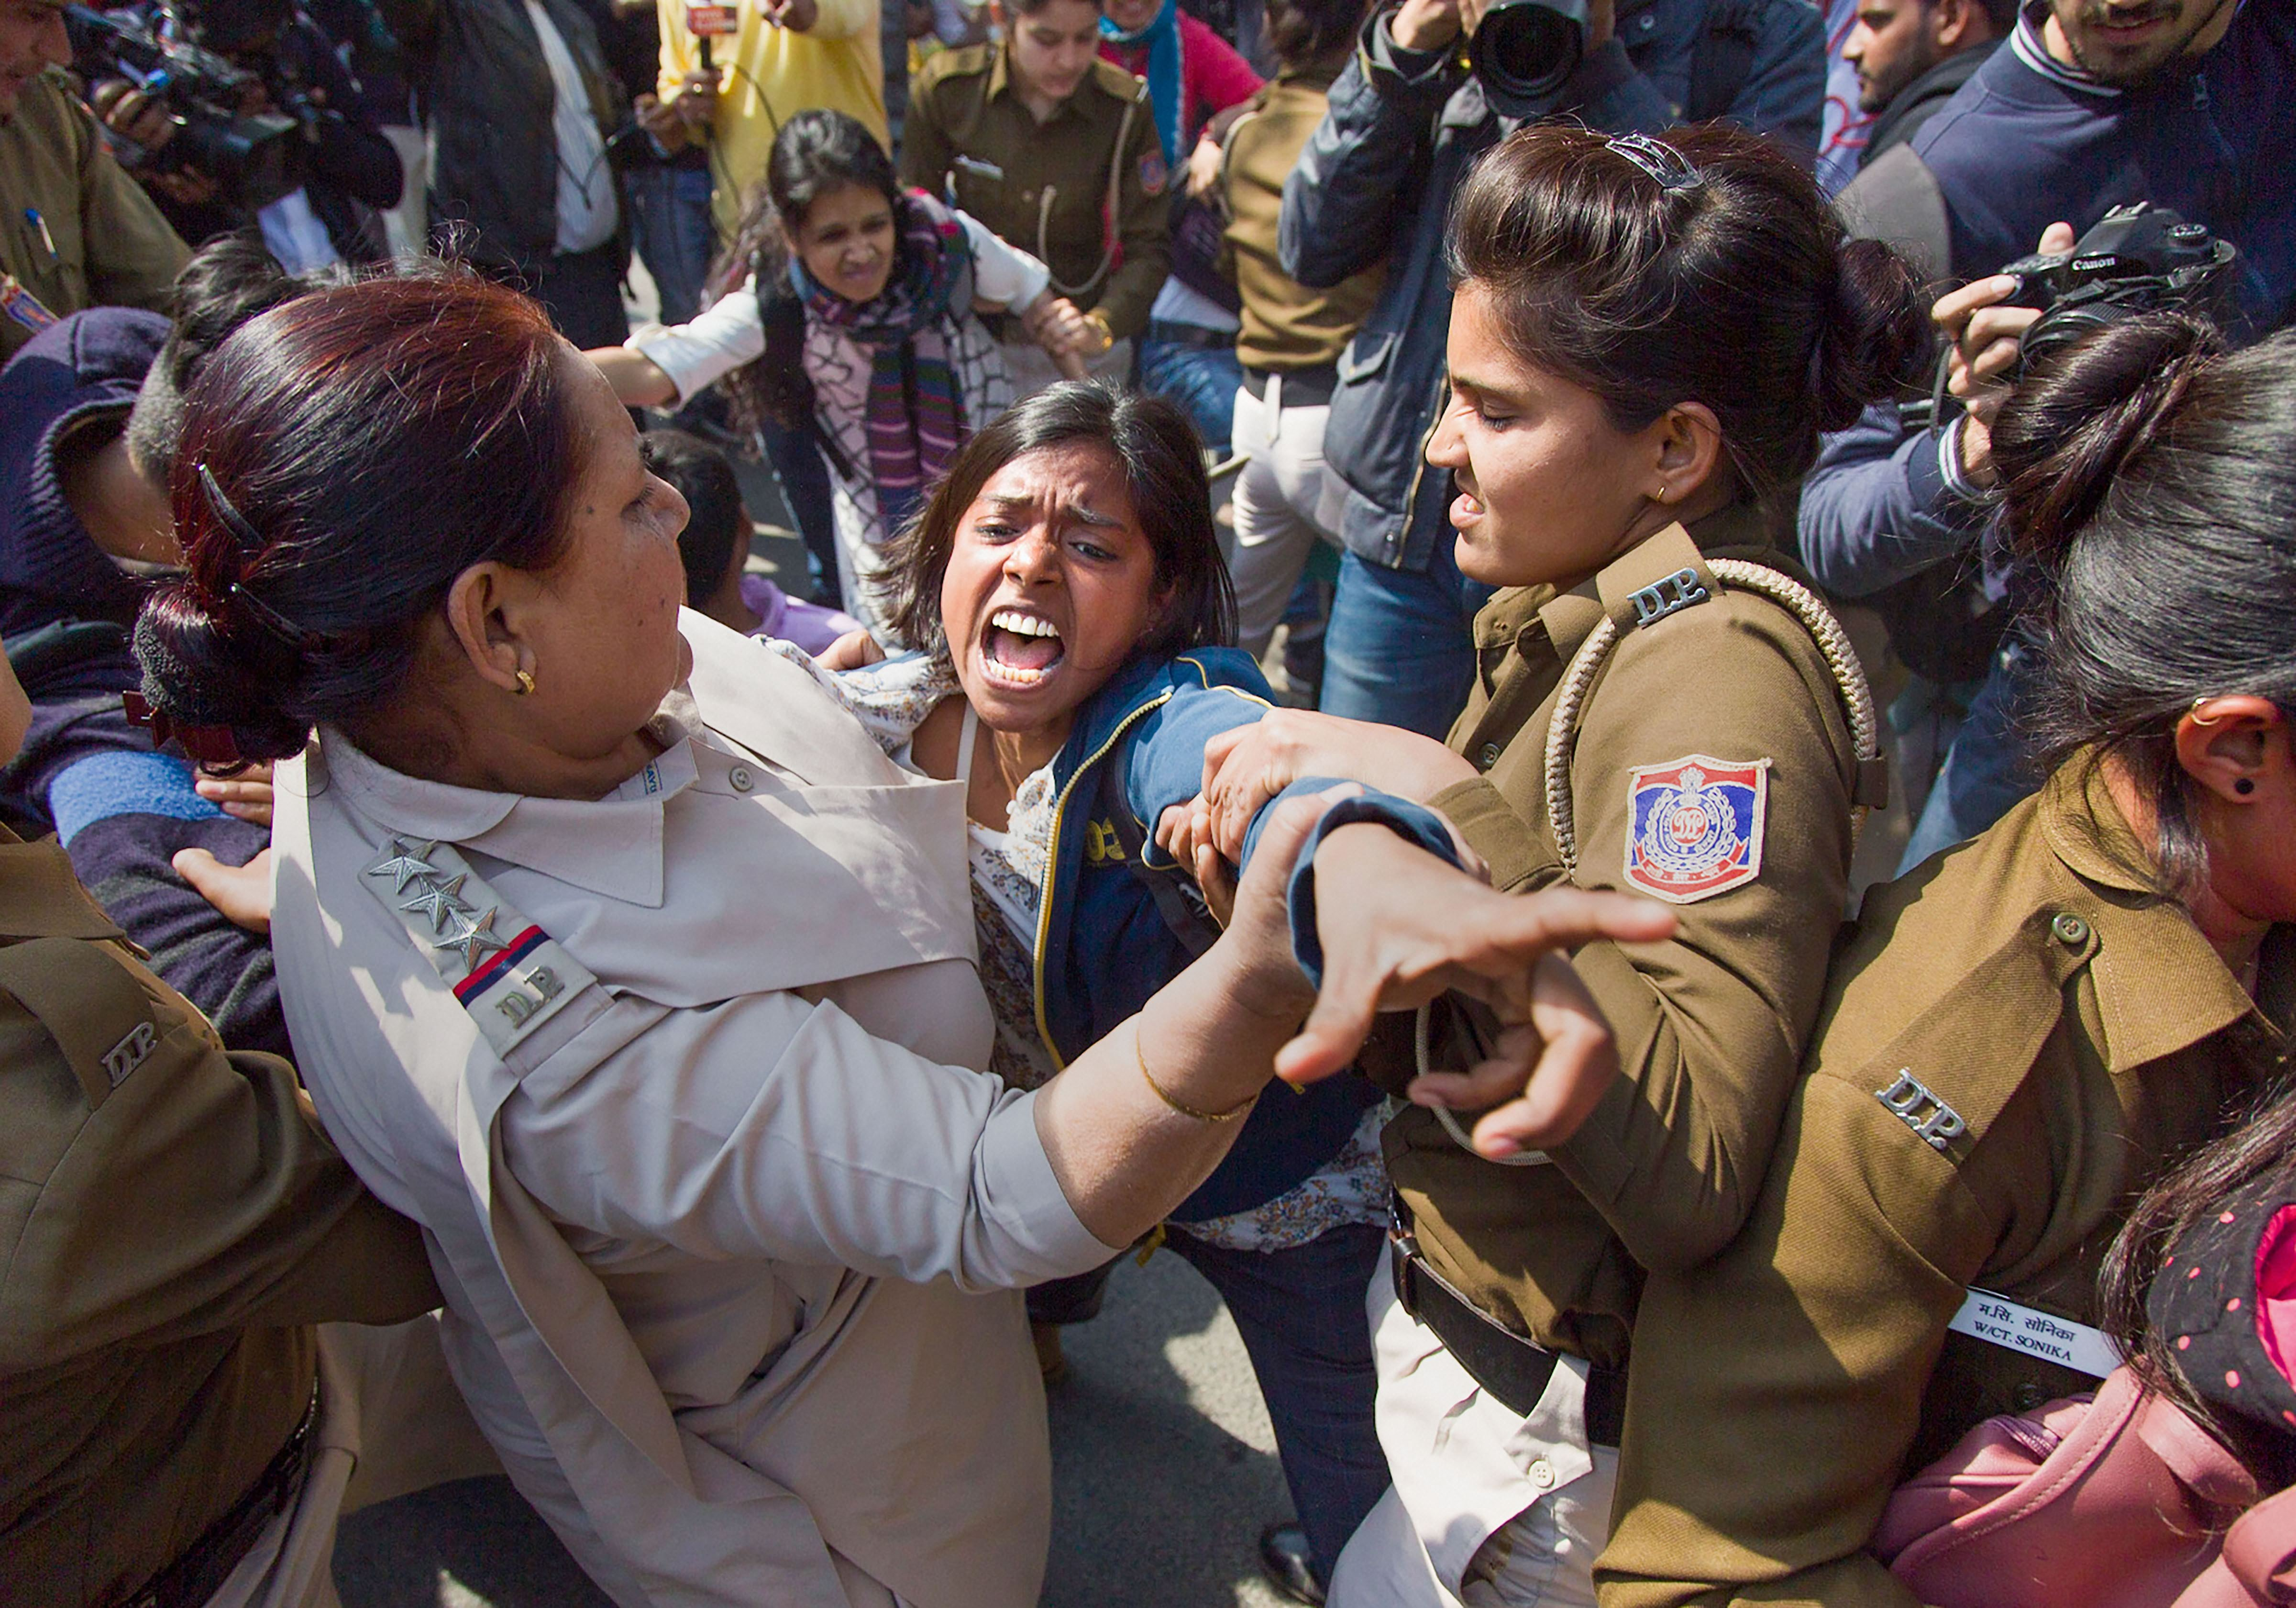 Protestors are detained by the police at UP Bhawan, in New Delhi, February 20, 2020